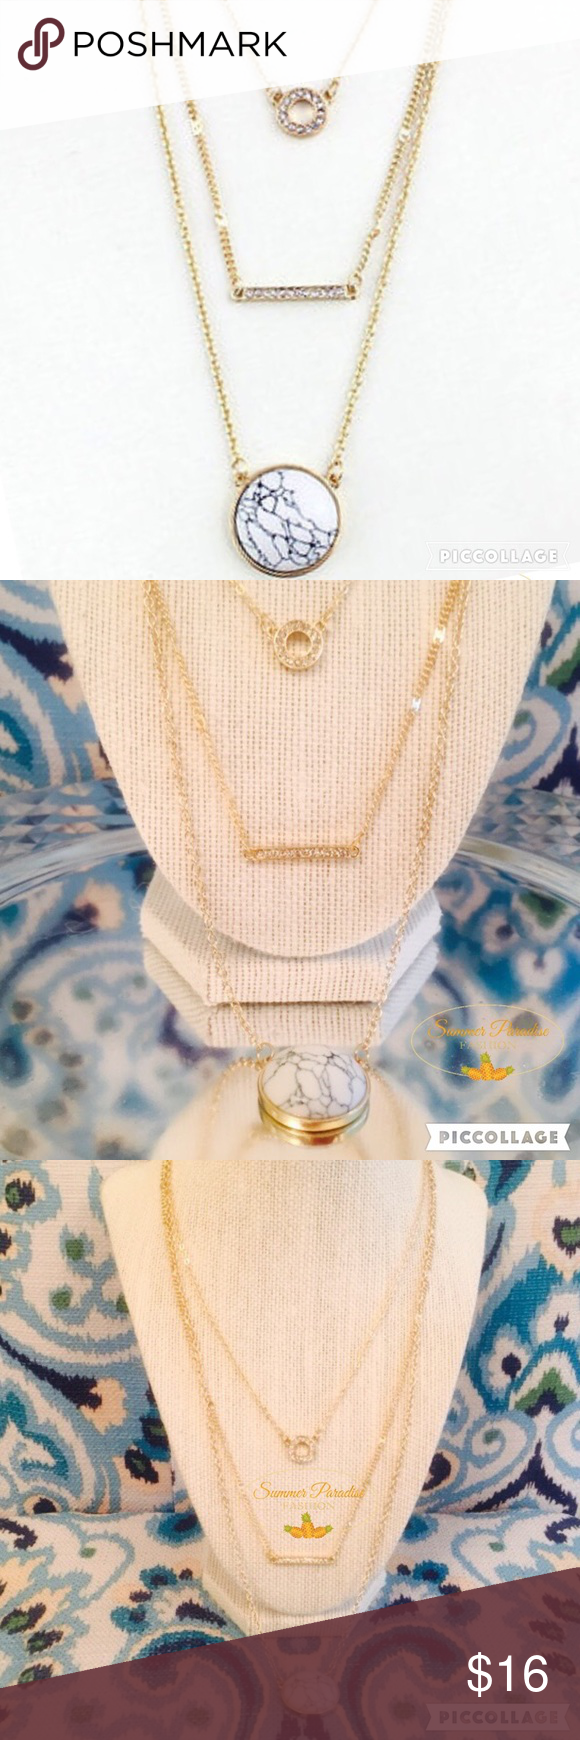 💠SALE💠NWT Triple Strand Crystal Marbled Necklace 🎉BUY ANY 2 ITEMS & GET 3rd ITEM $10 & under FREE!🎉. Gold plated layered crystal & white marbled necklace with lobster claw clasp & 2 inch extender.                                                        💠Bundle to Save $$$.                                           💠FREE GIFT with every purchase over $10.           TAGS: Crystal necklace, gold layer necklace, marble necklace Summer Paradise Jewelry Necklaces